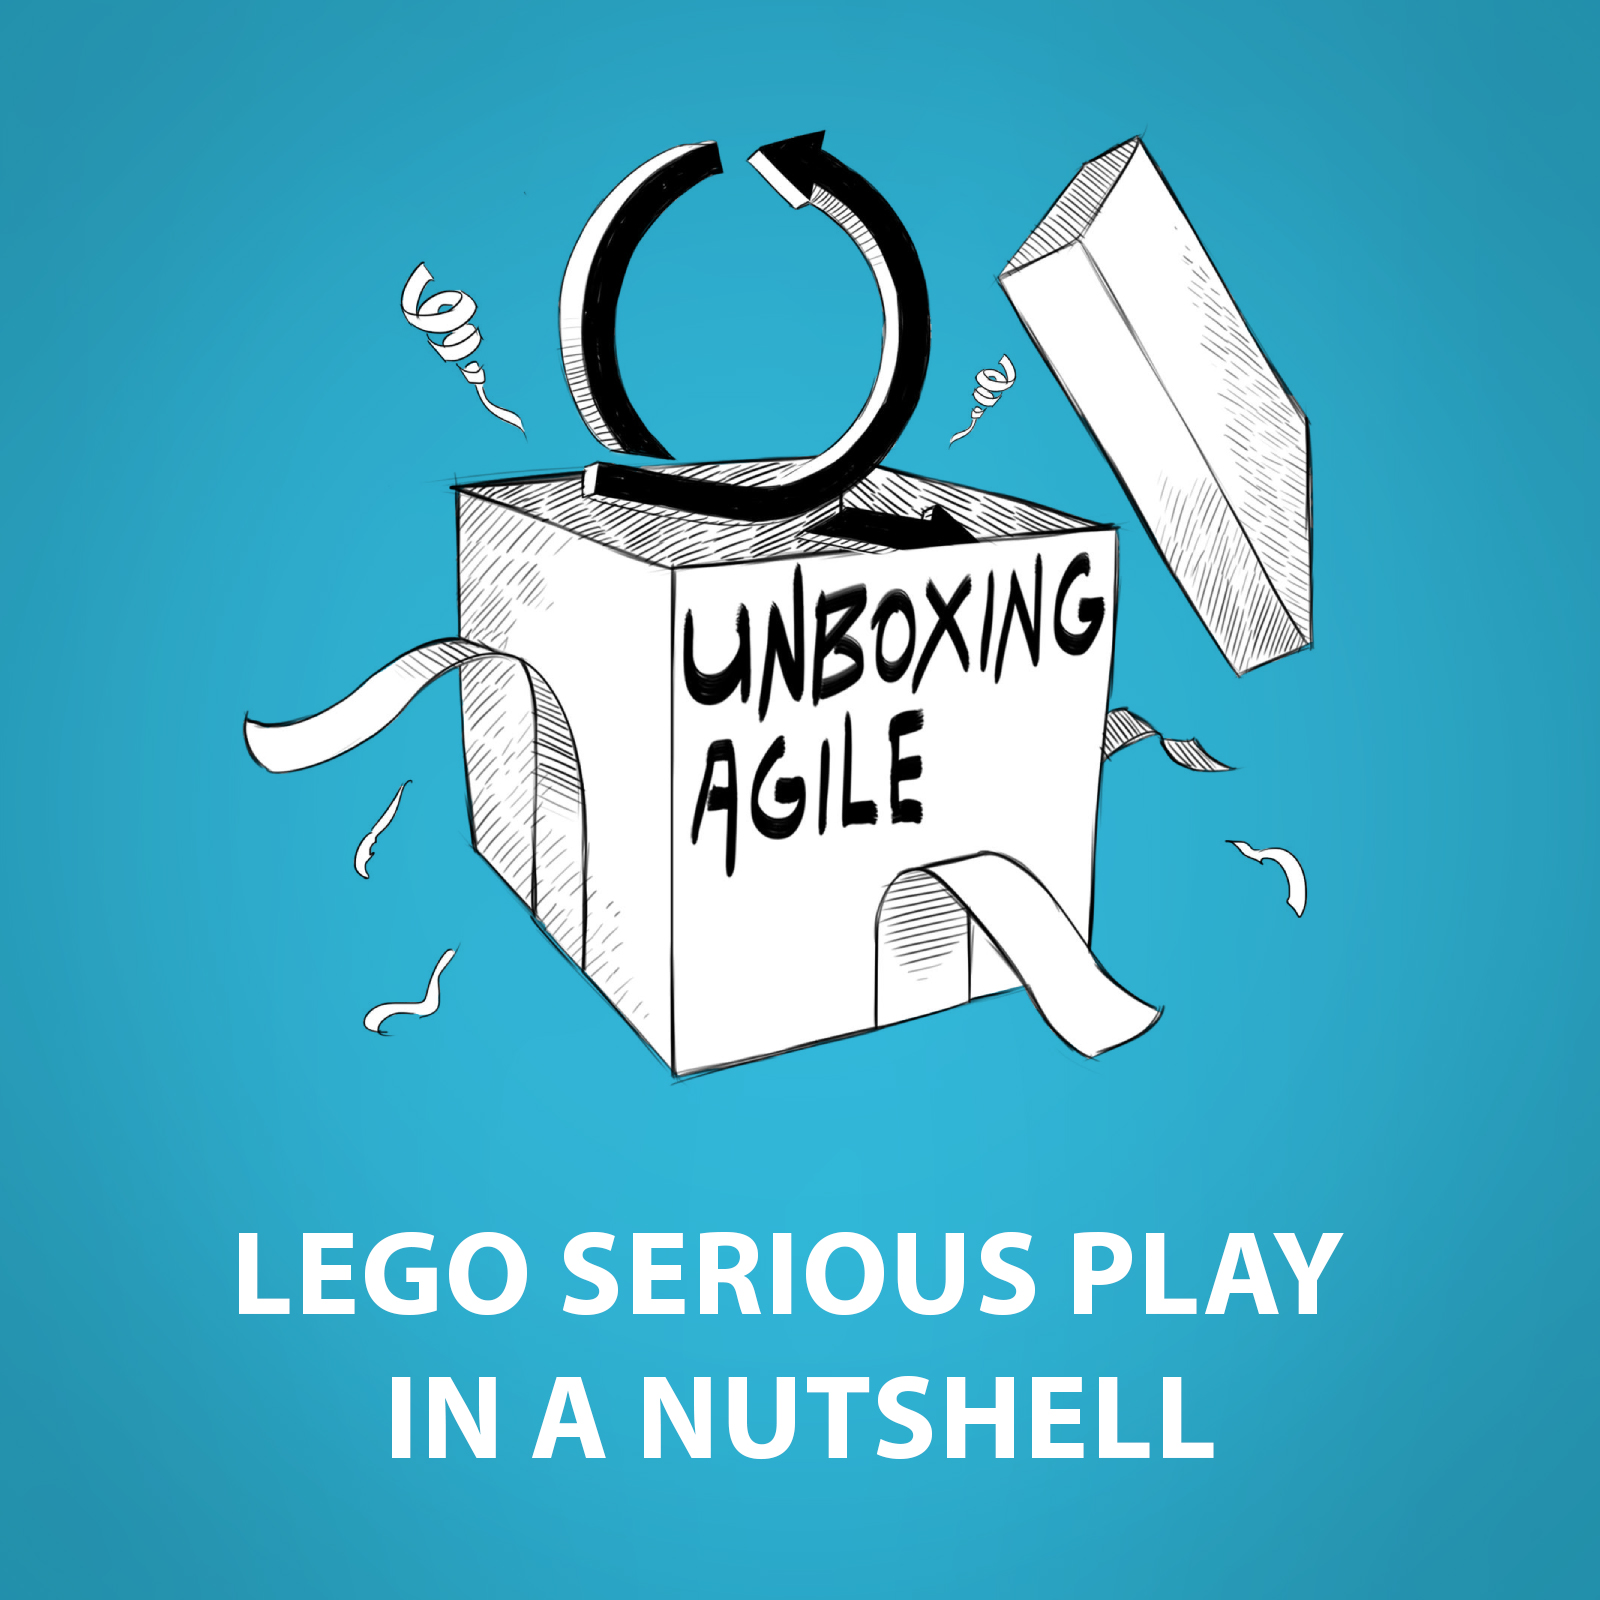 Agile Spiele ua013 - lego serious play in a nutshell - unboxing agile